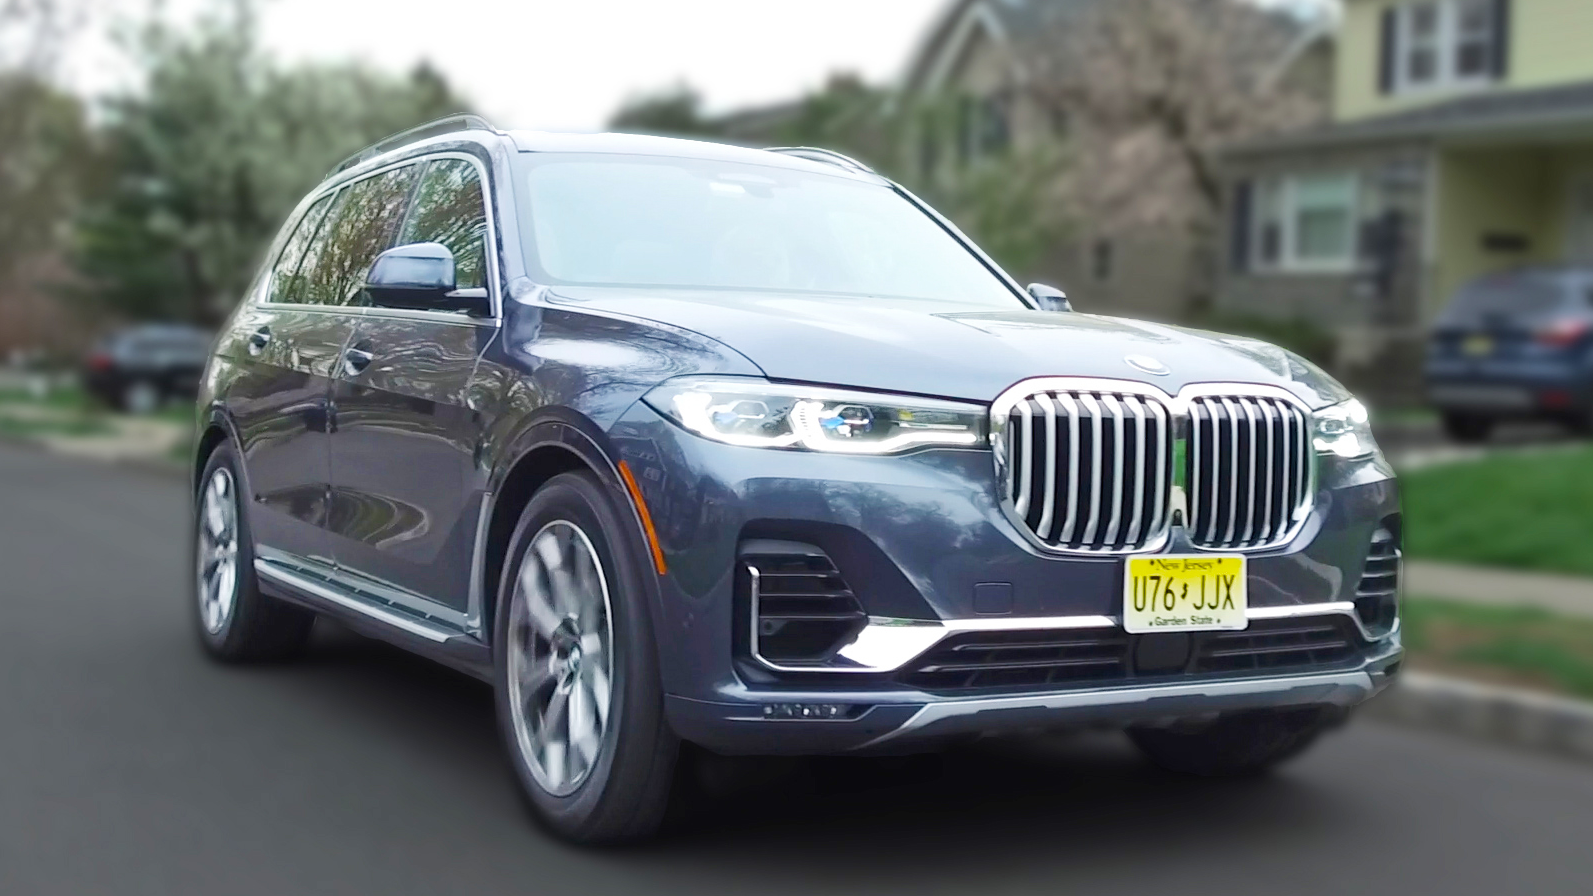 Real Reviews   Are The BMW X7 Tech Features Helpful Or Gimmicky?